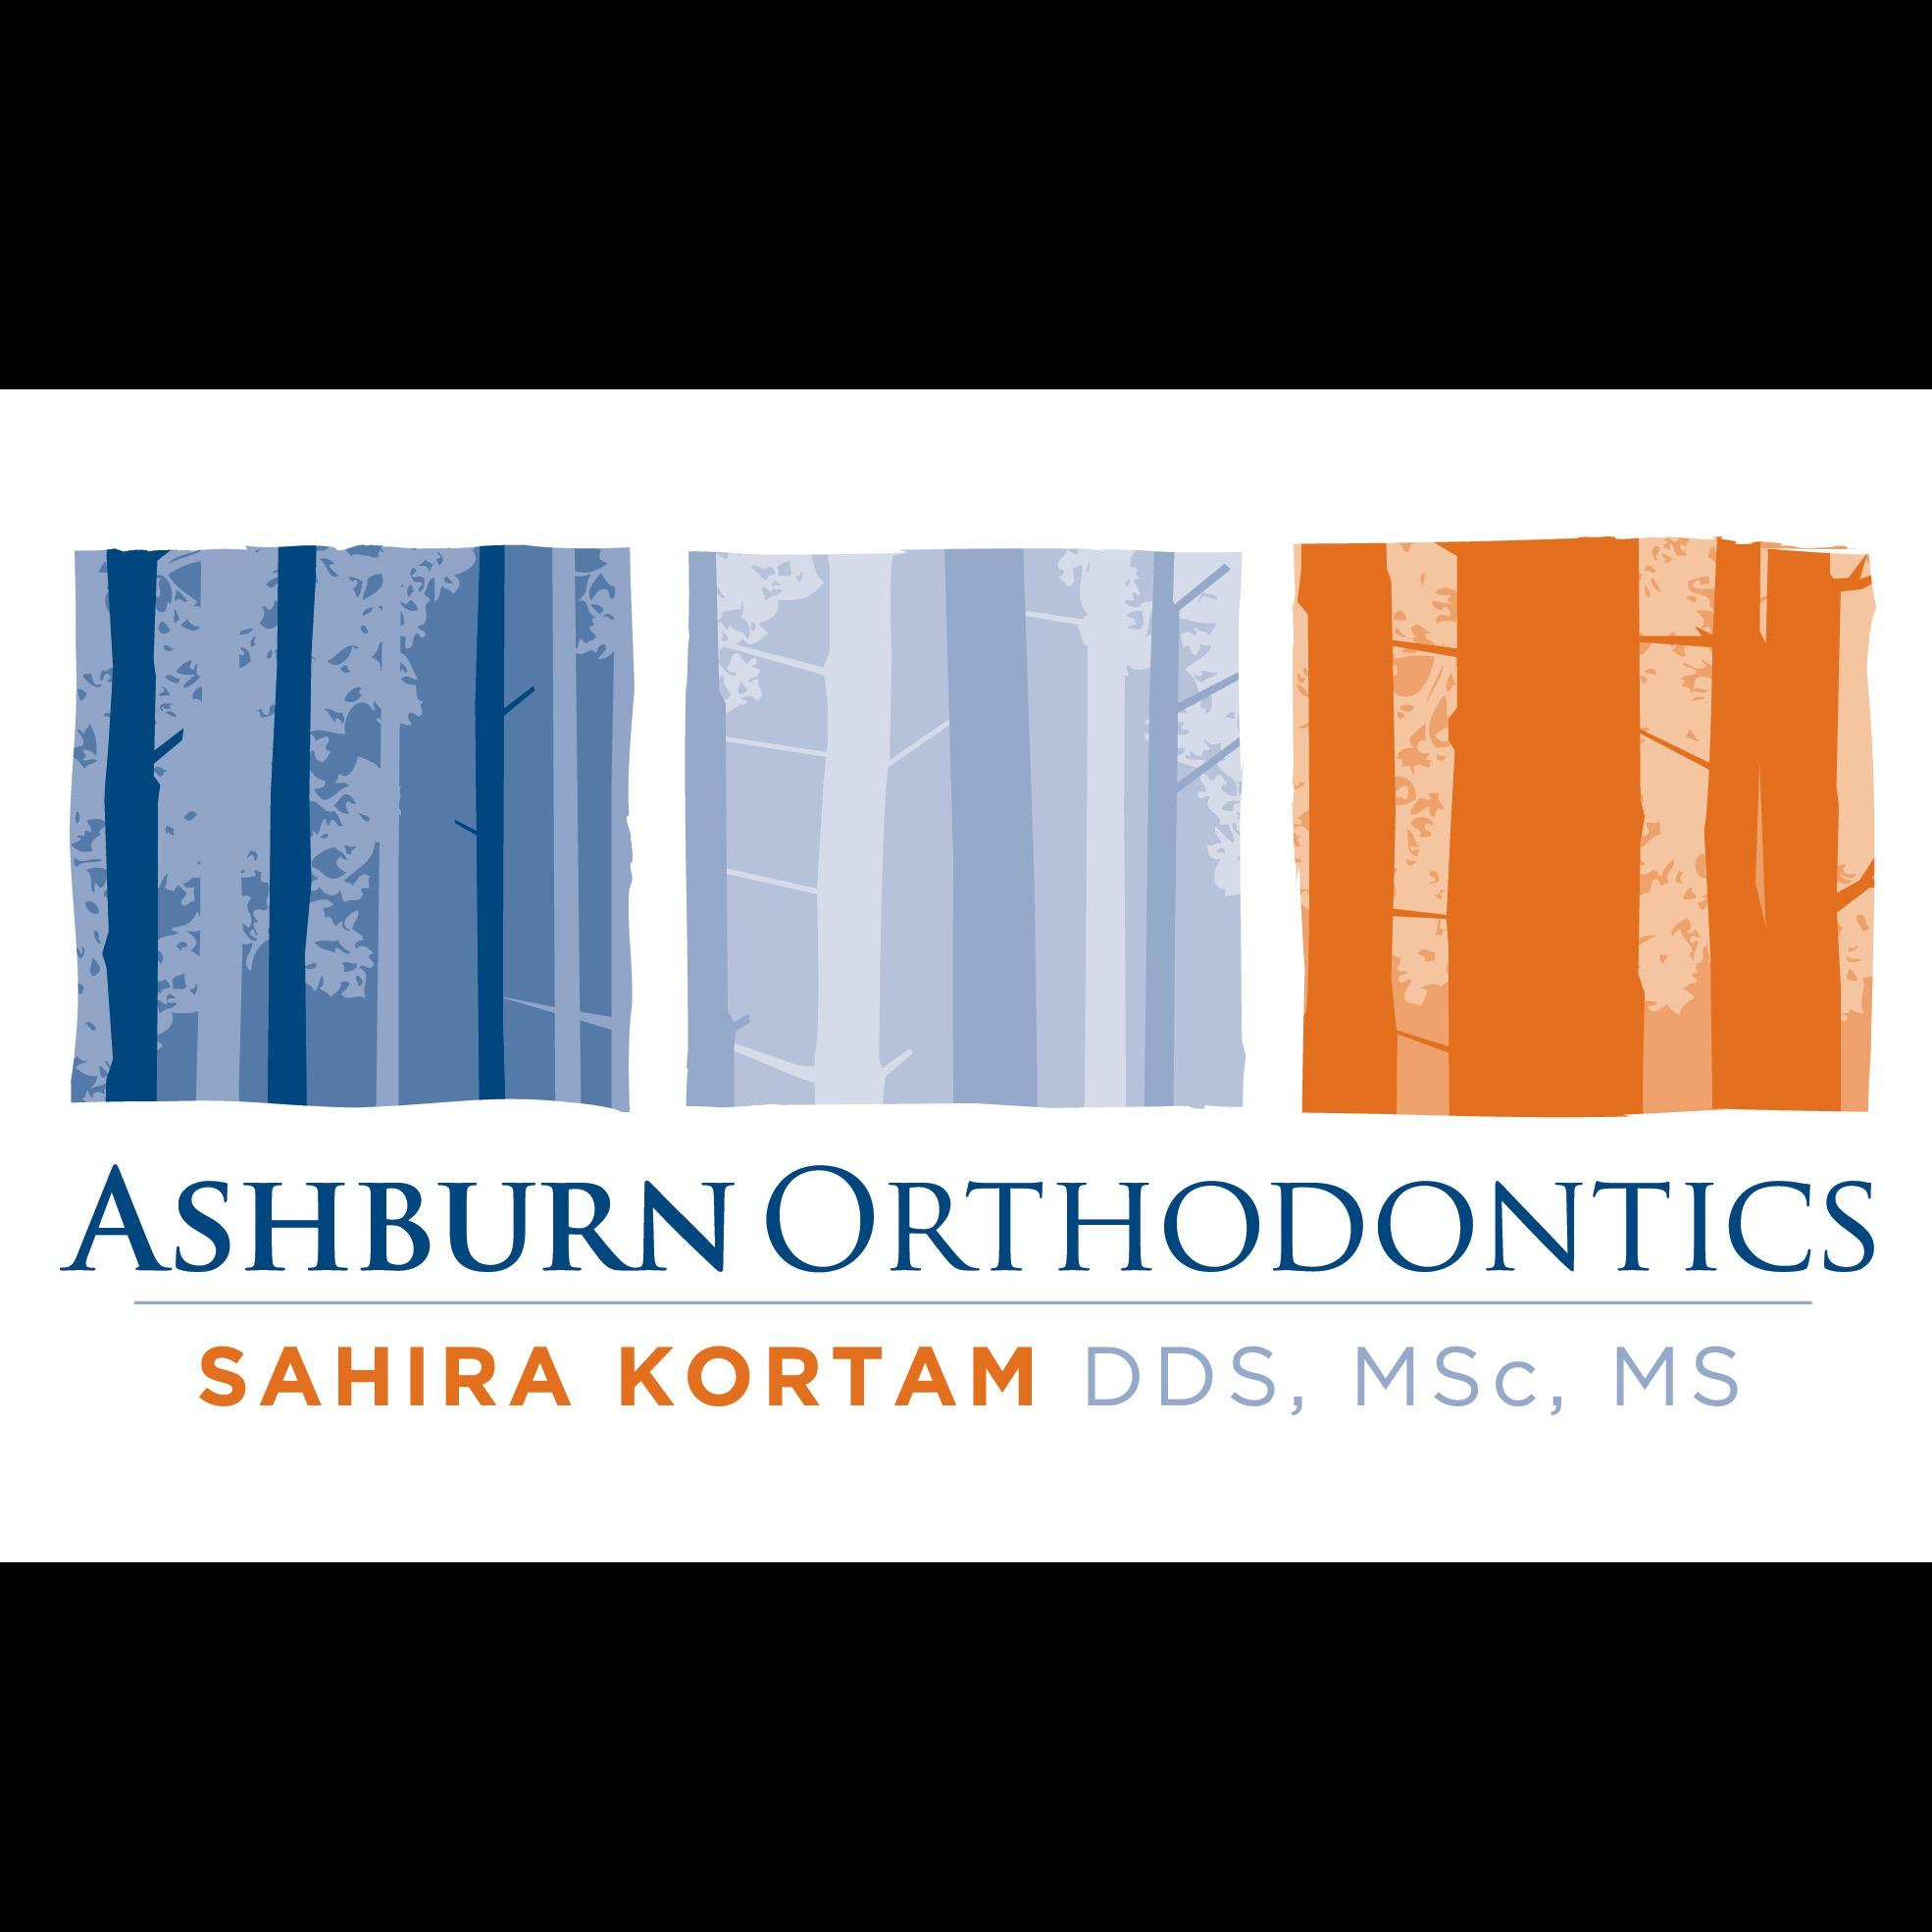 Ashburn Orthodontics